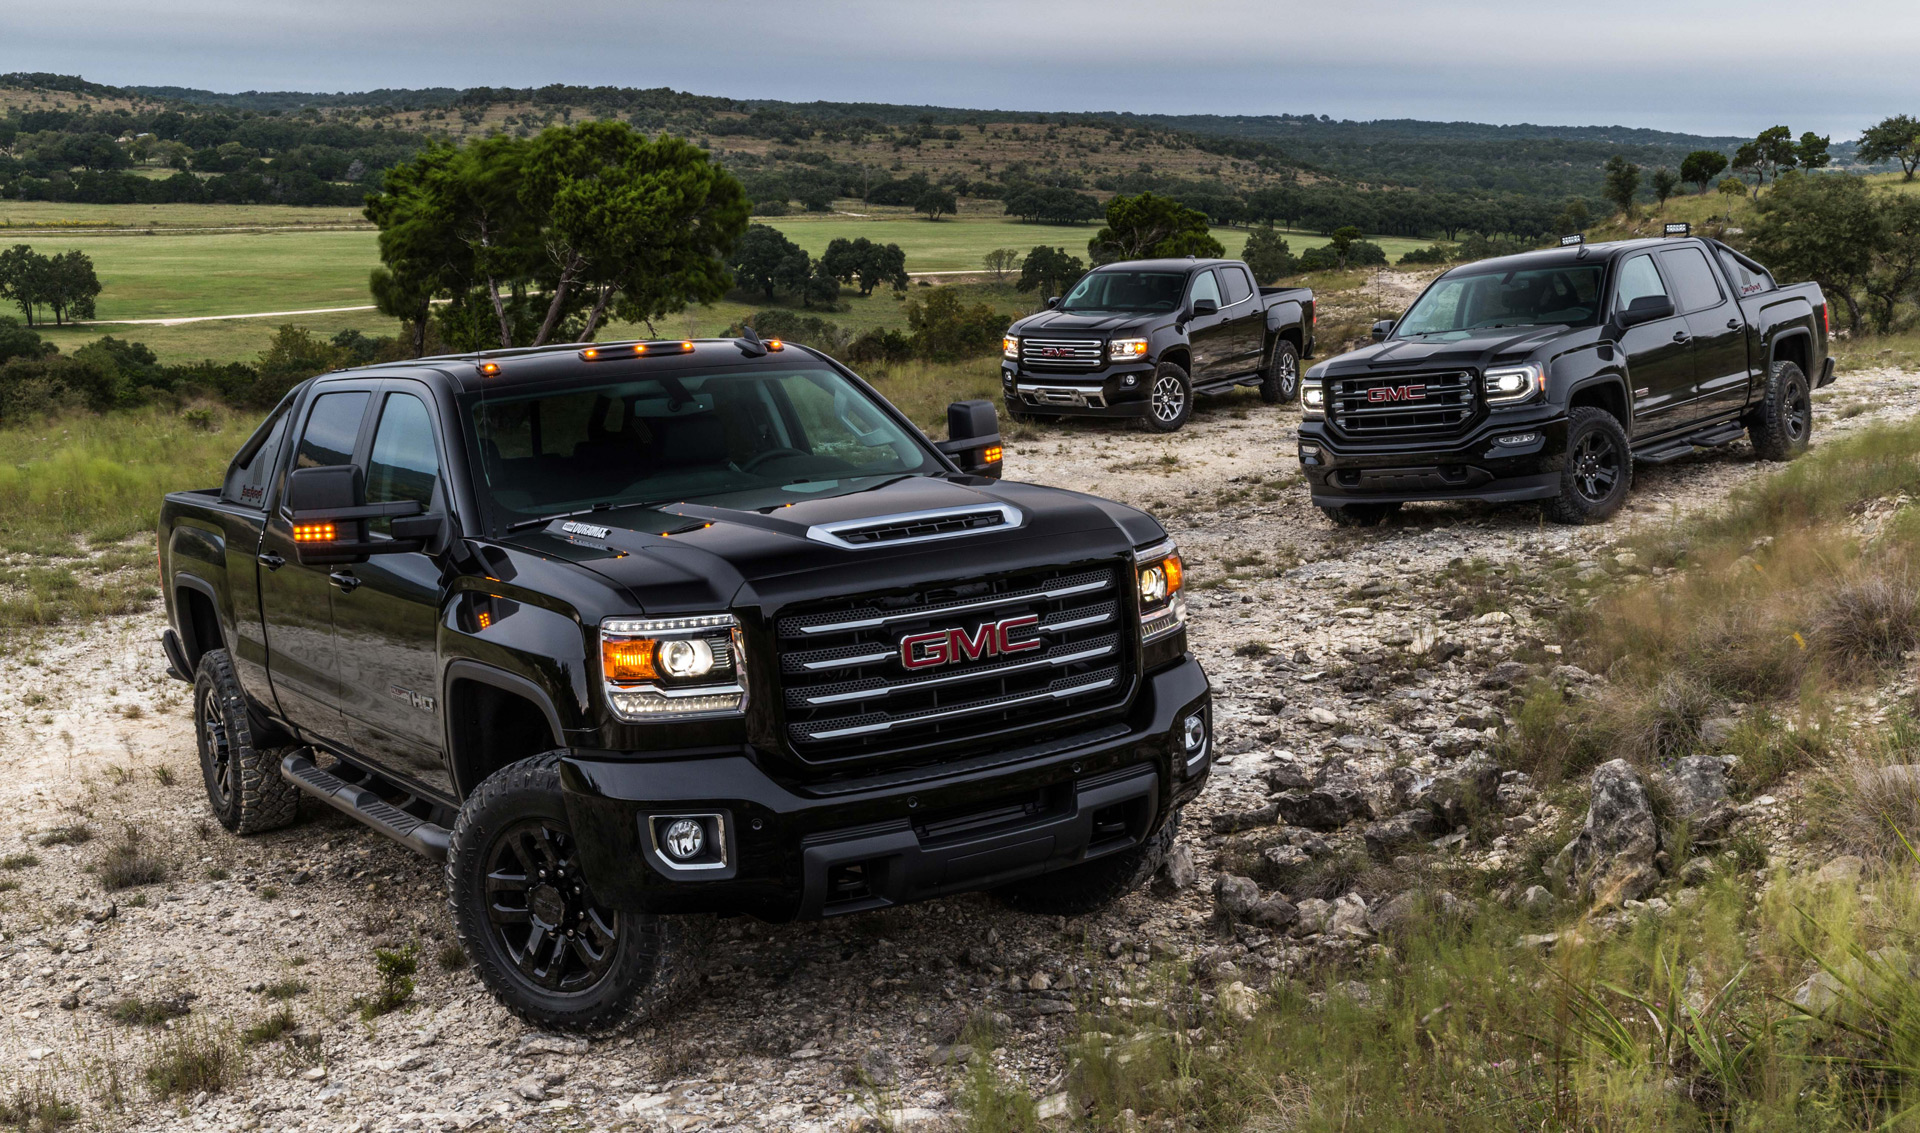 2017 Gmc Sierra 2500hd Review Ratings Specs Prices And